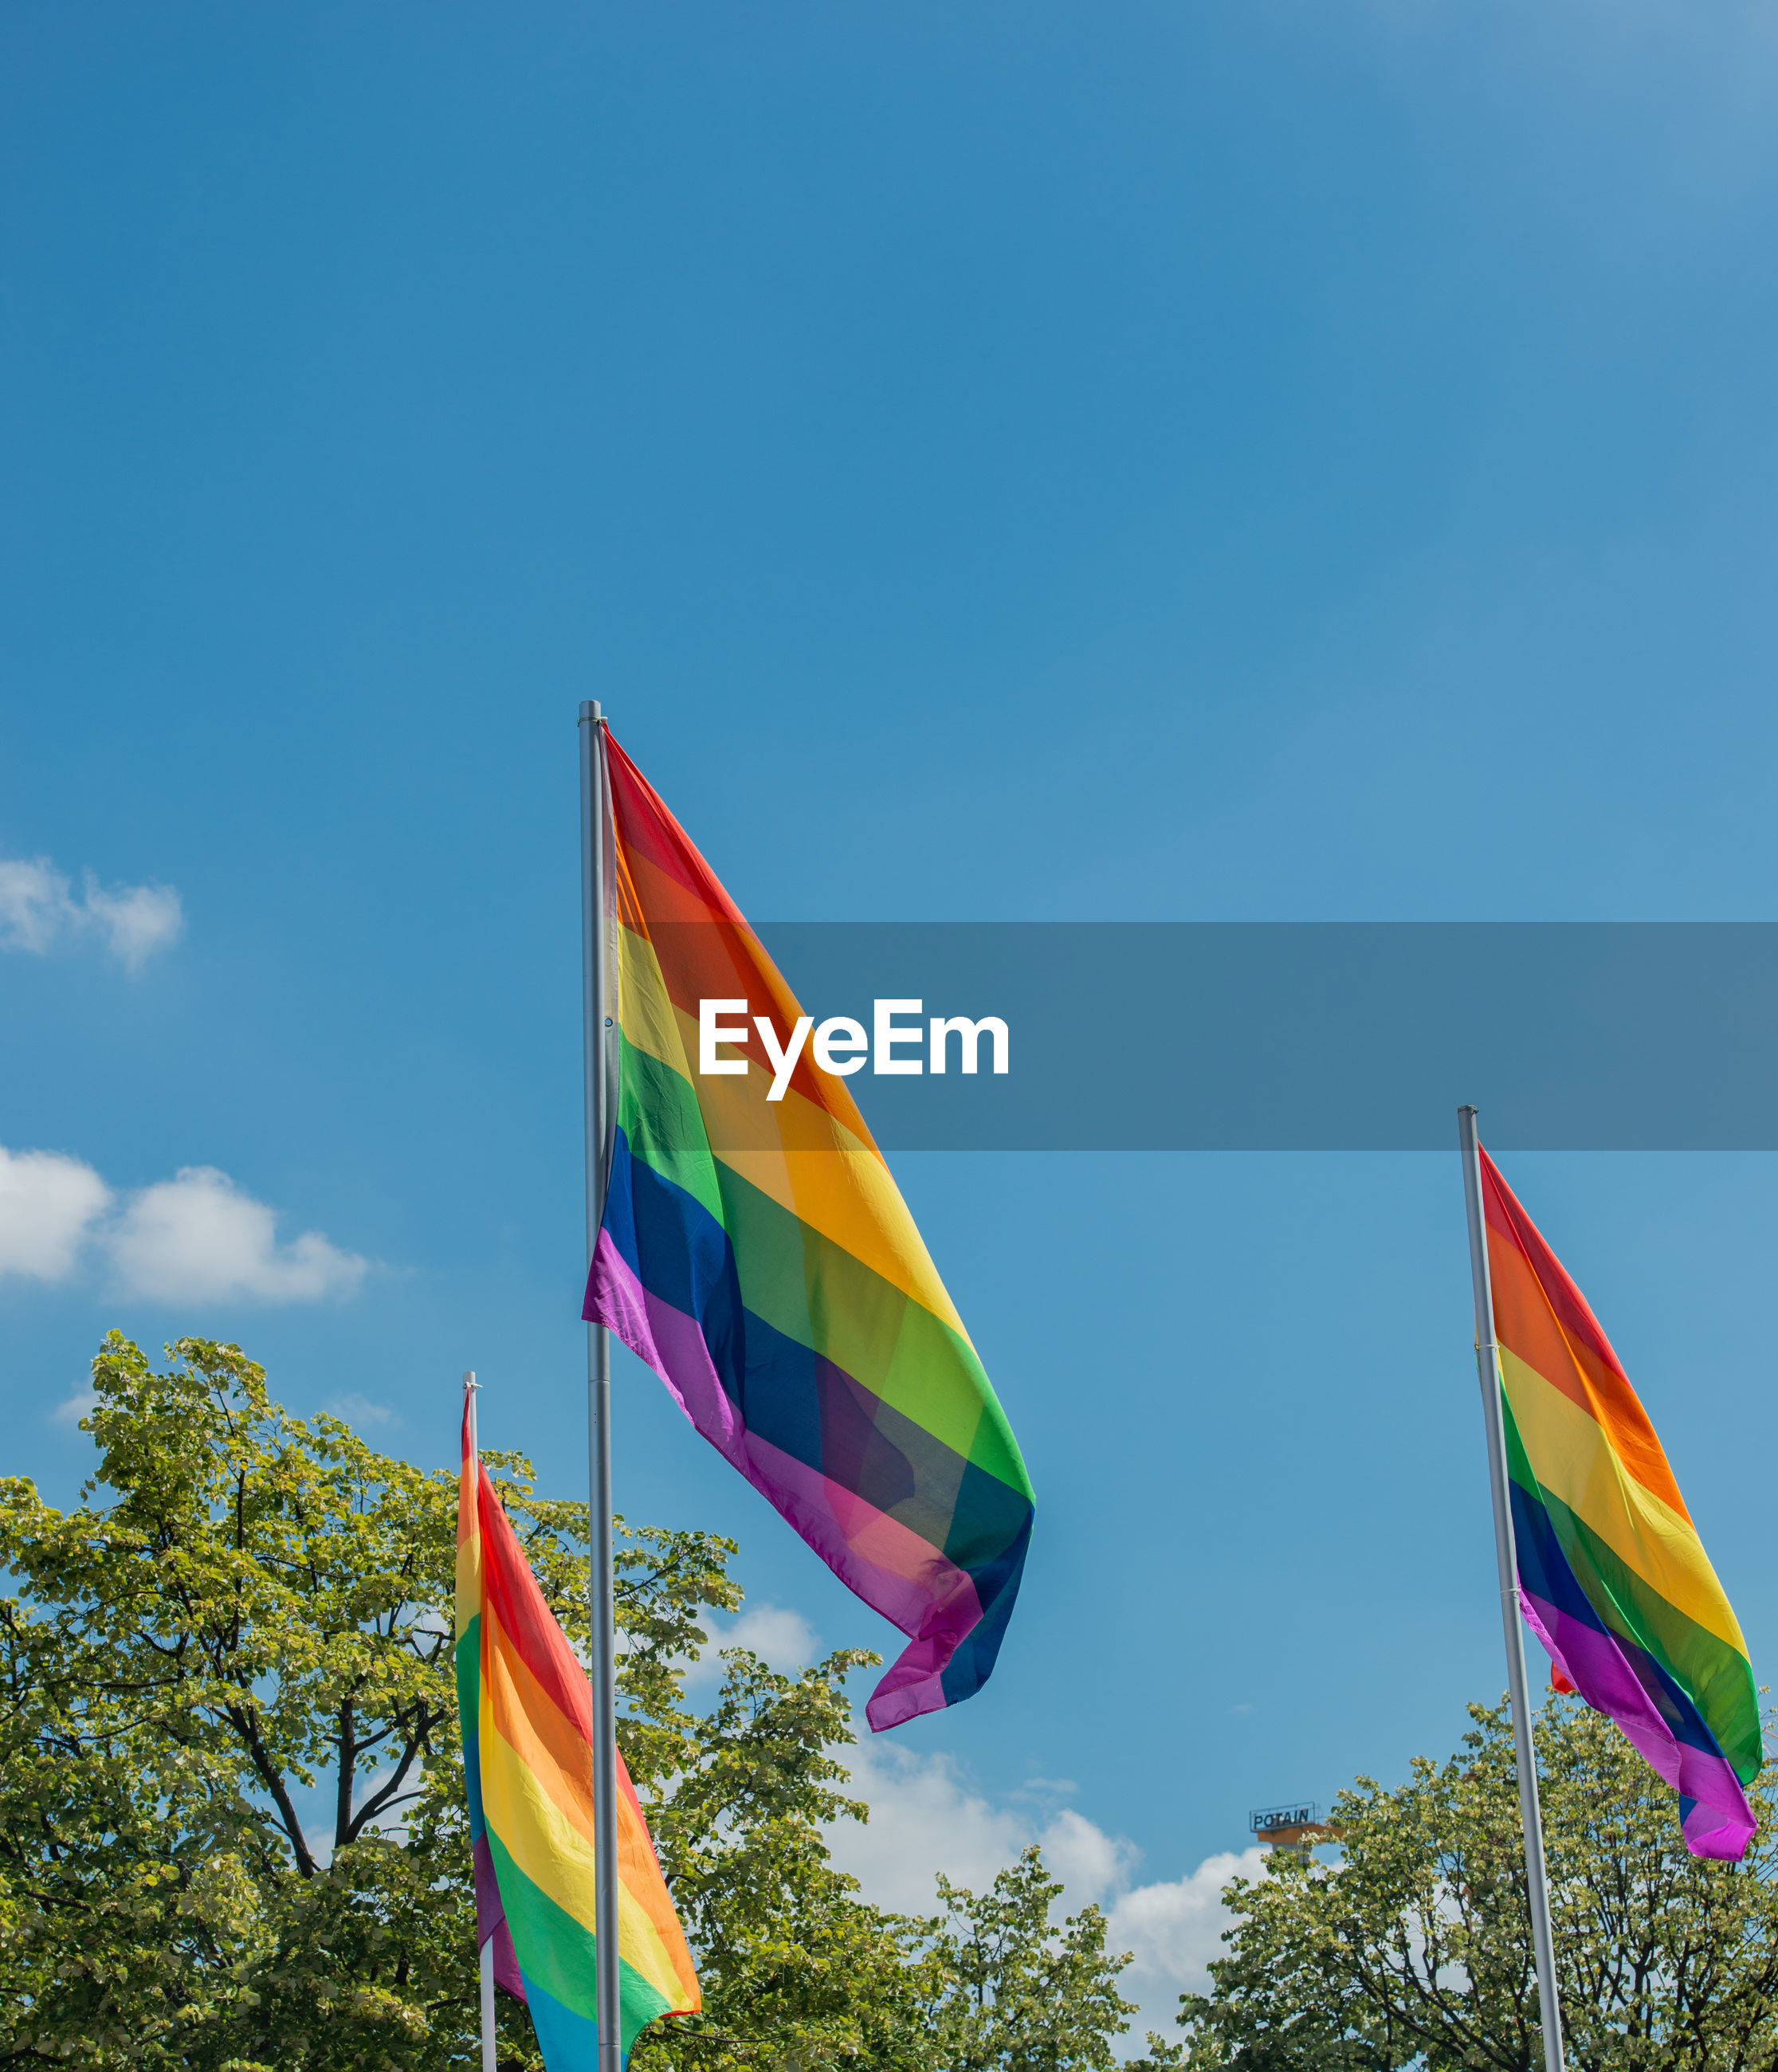 Low angle view of rainbow flags against sky